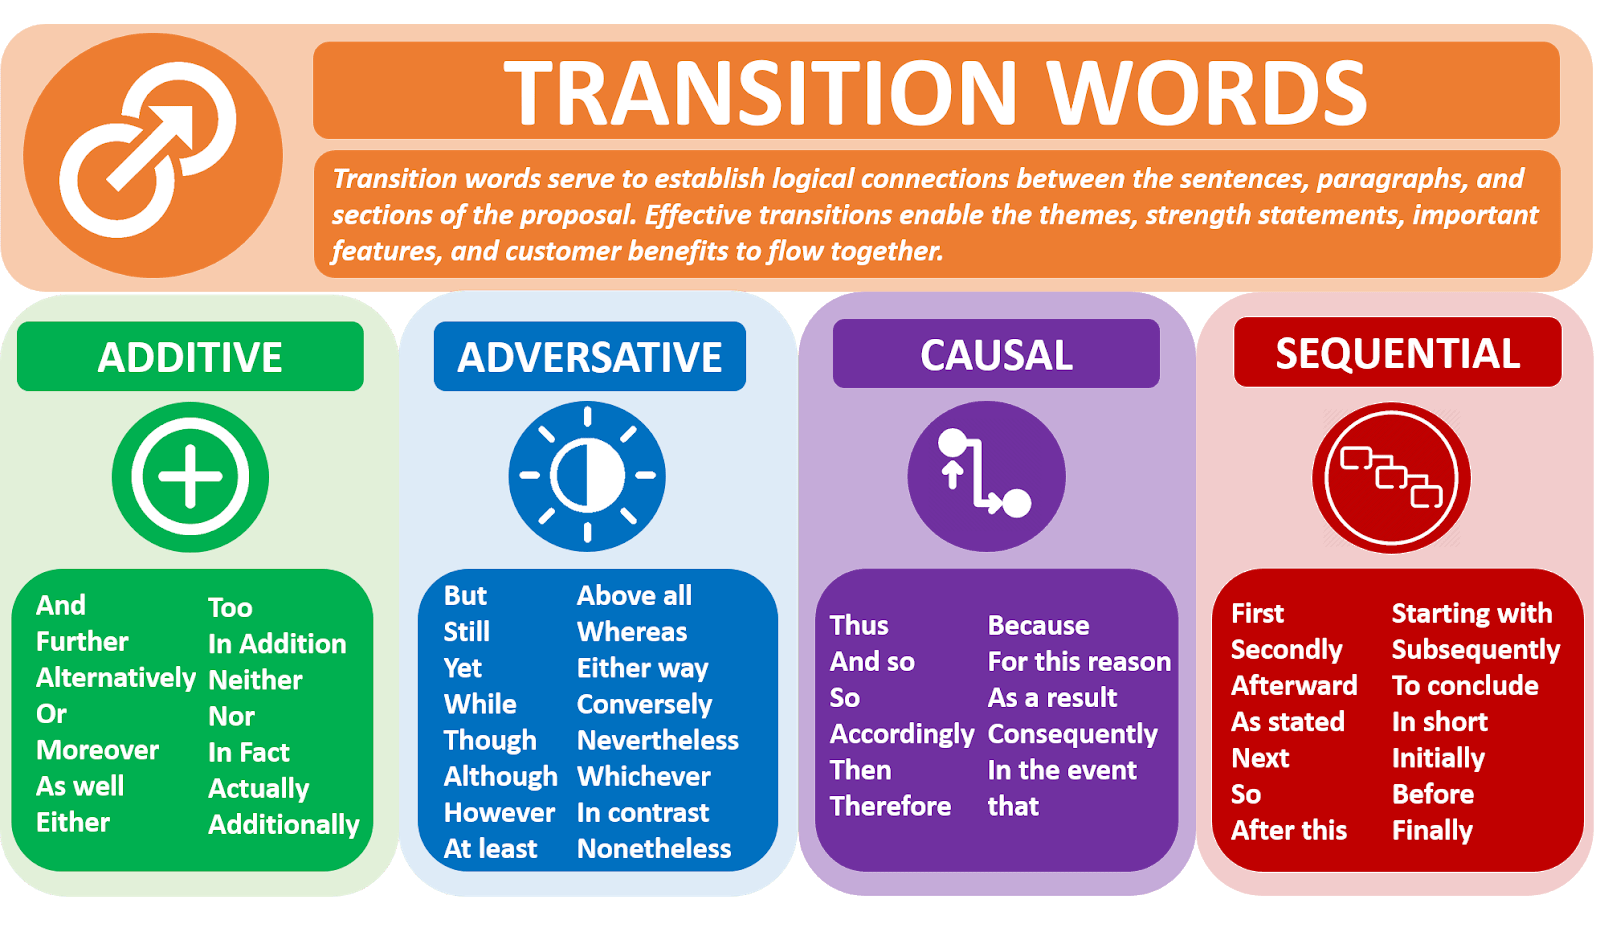 What are Transition words? List of ALL Transition words.